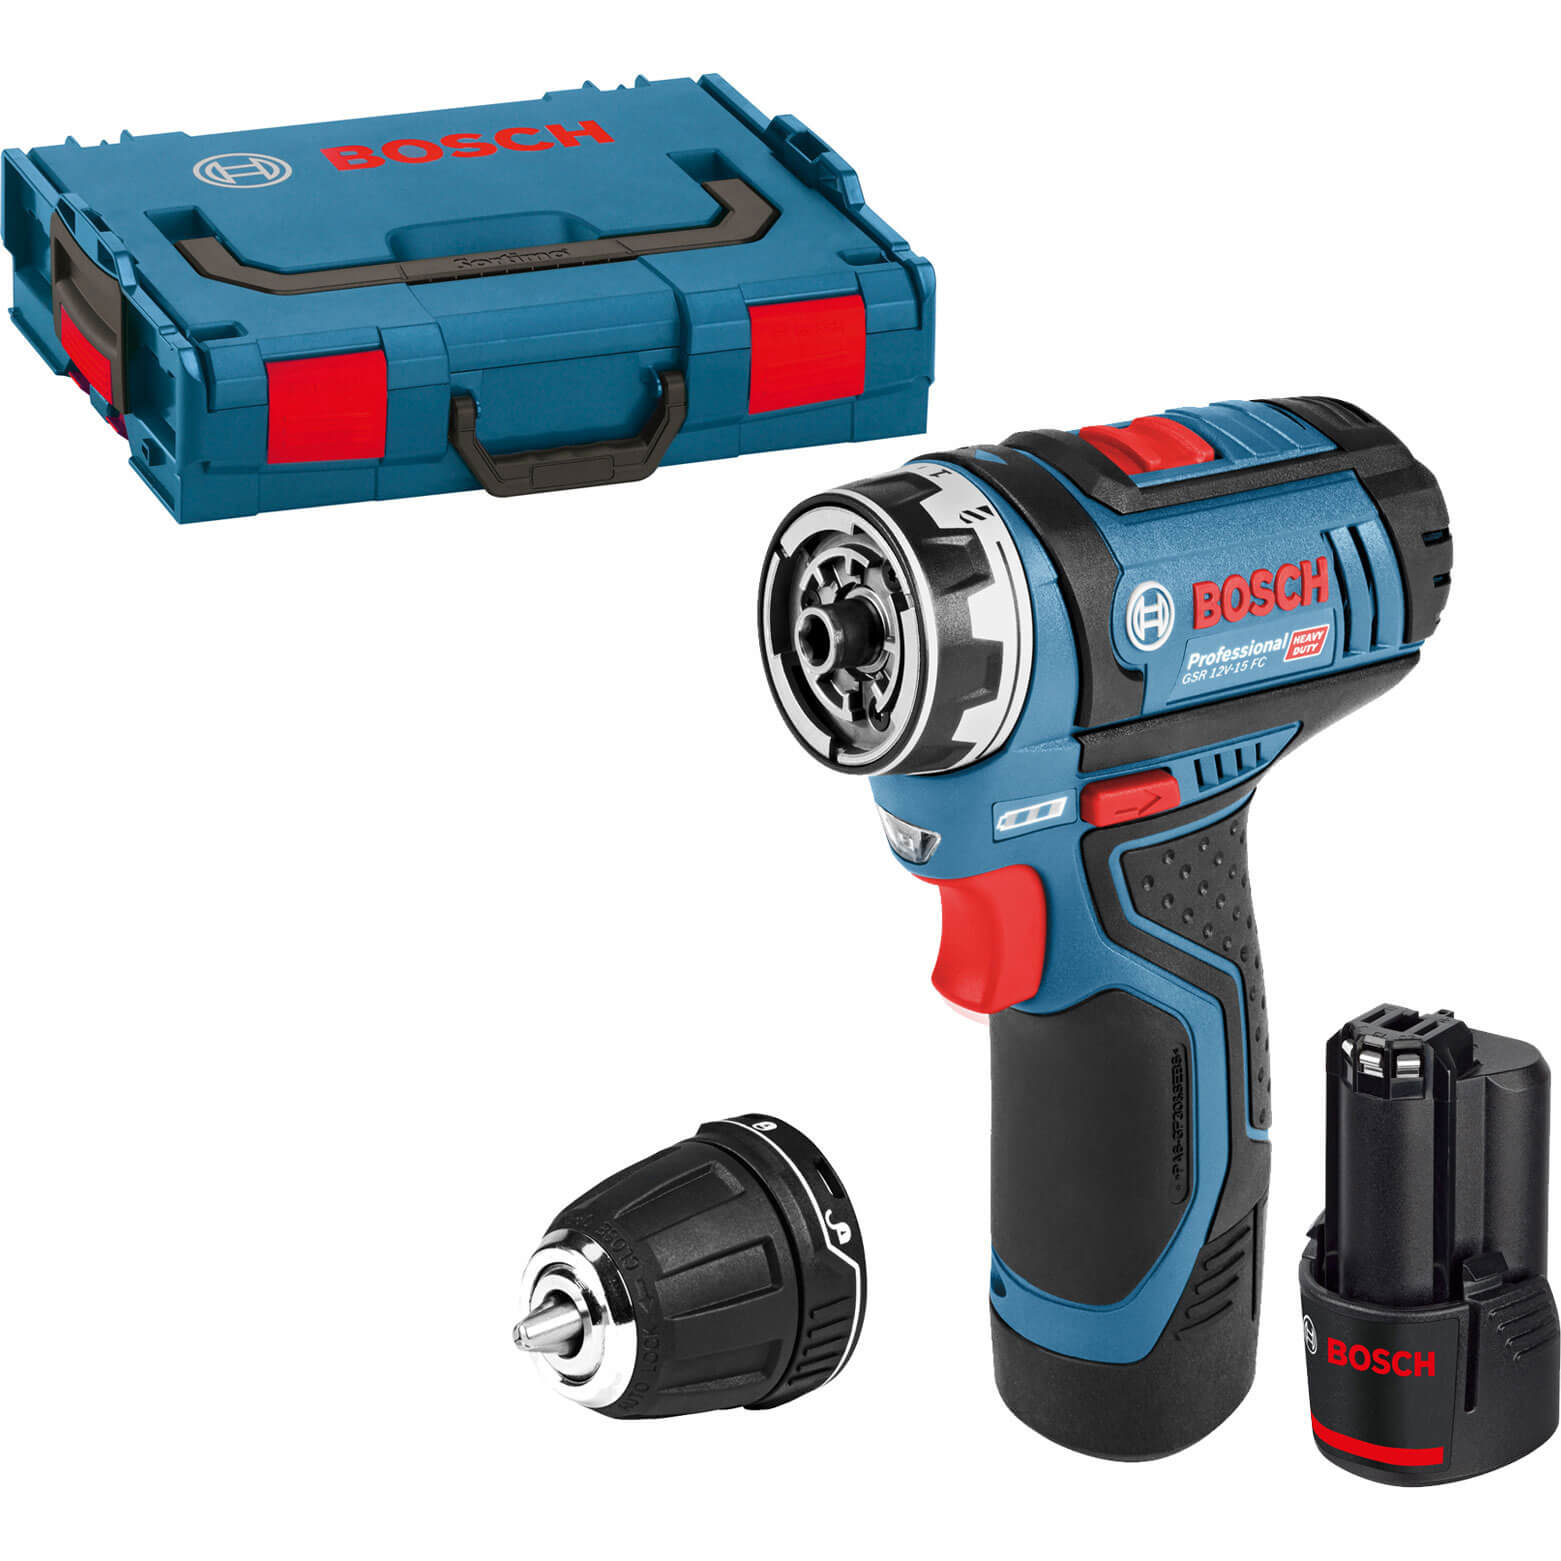 Bosch GSR 12 V-15 FC Cordless Brushless Drill Driver 2 x 2ah Li-ion Charger Case